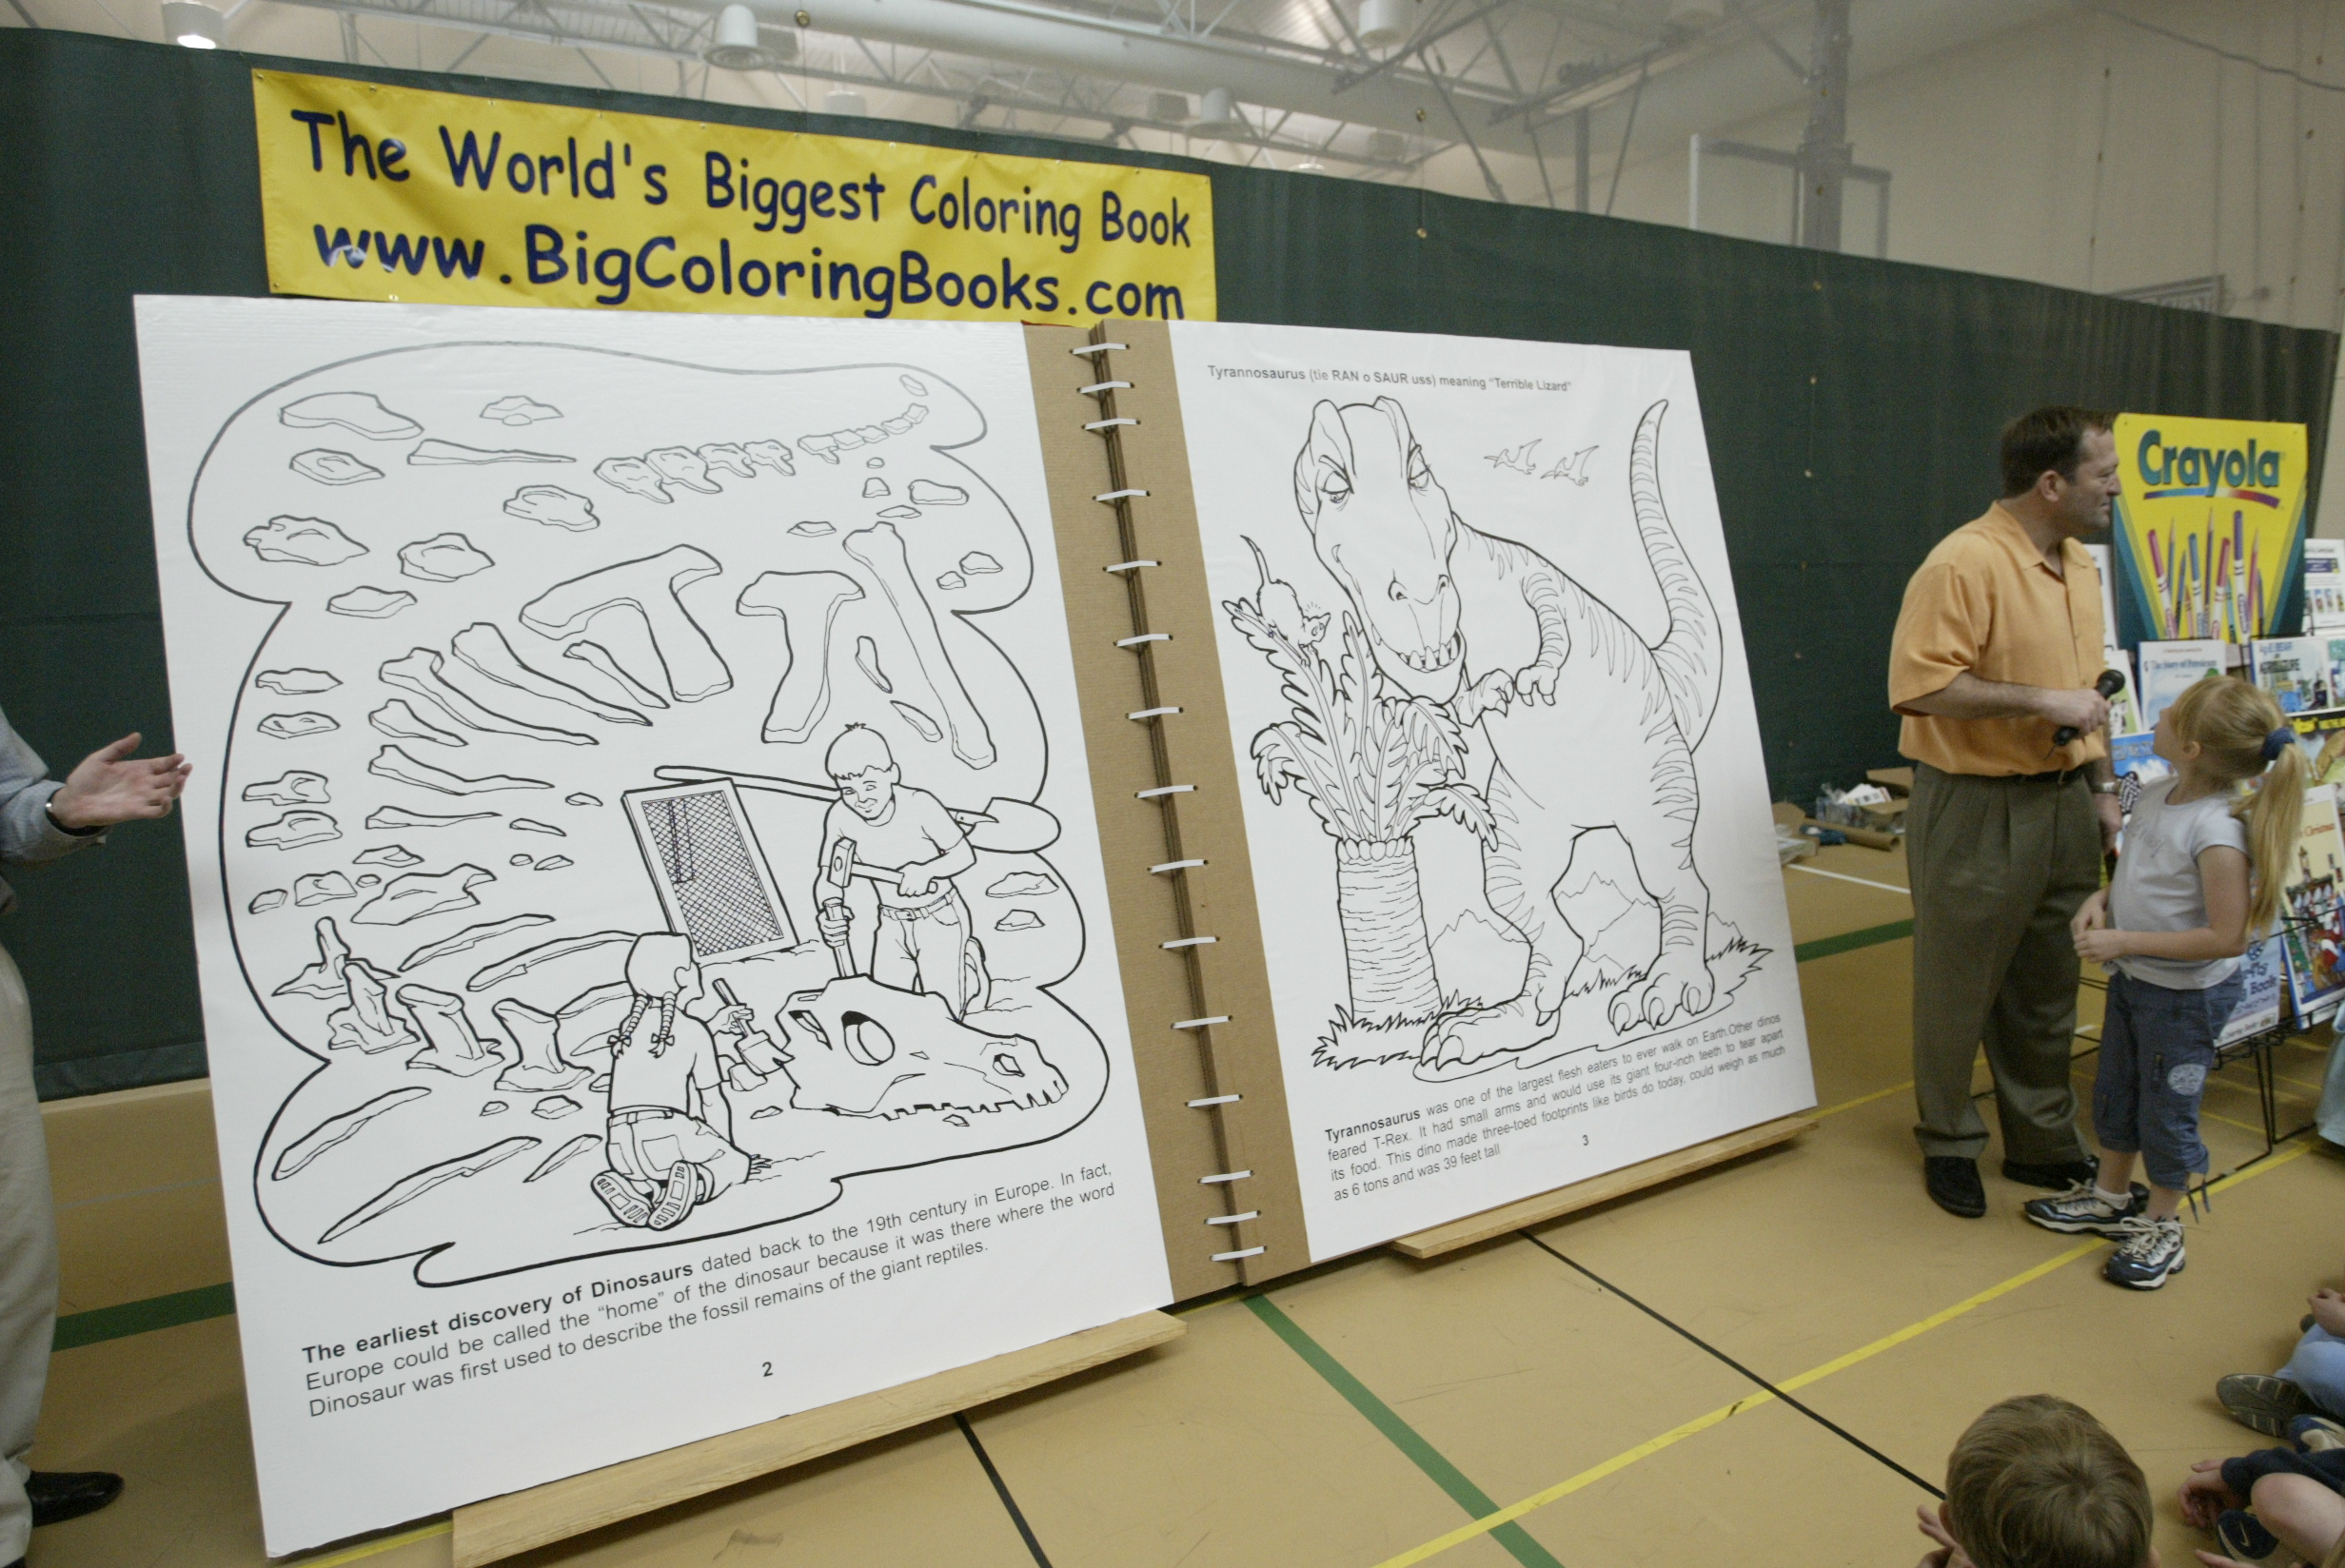 International Coloring (Colouring) Book Day Celebrated by RBCB and Crew